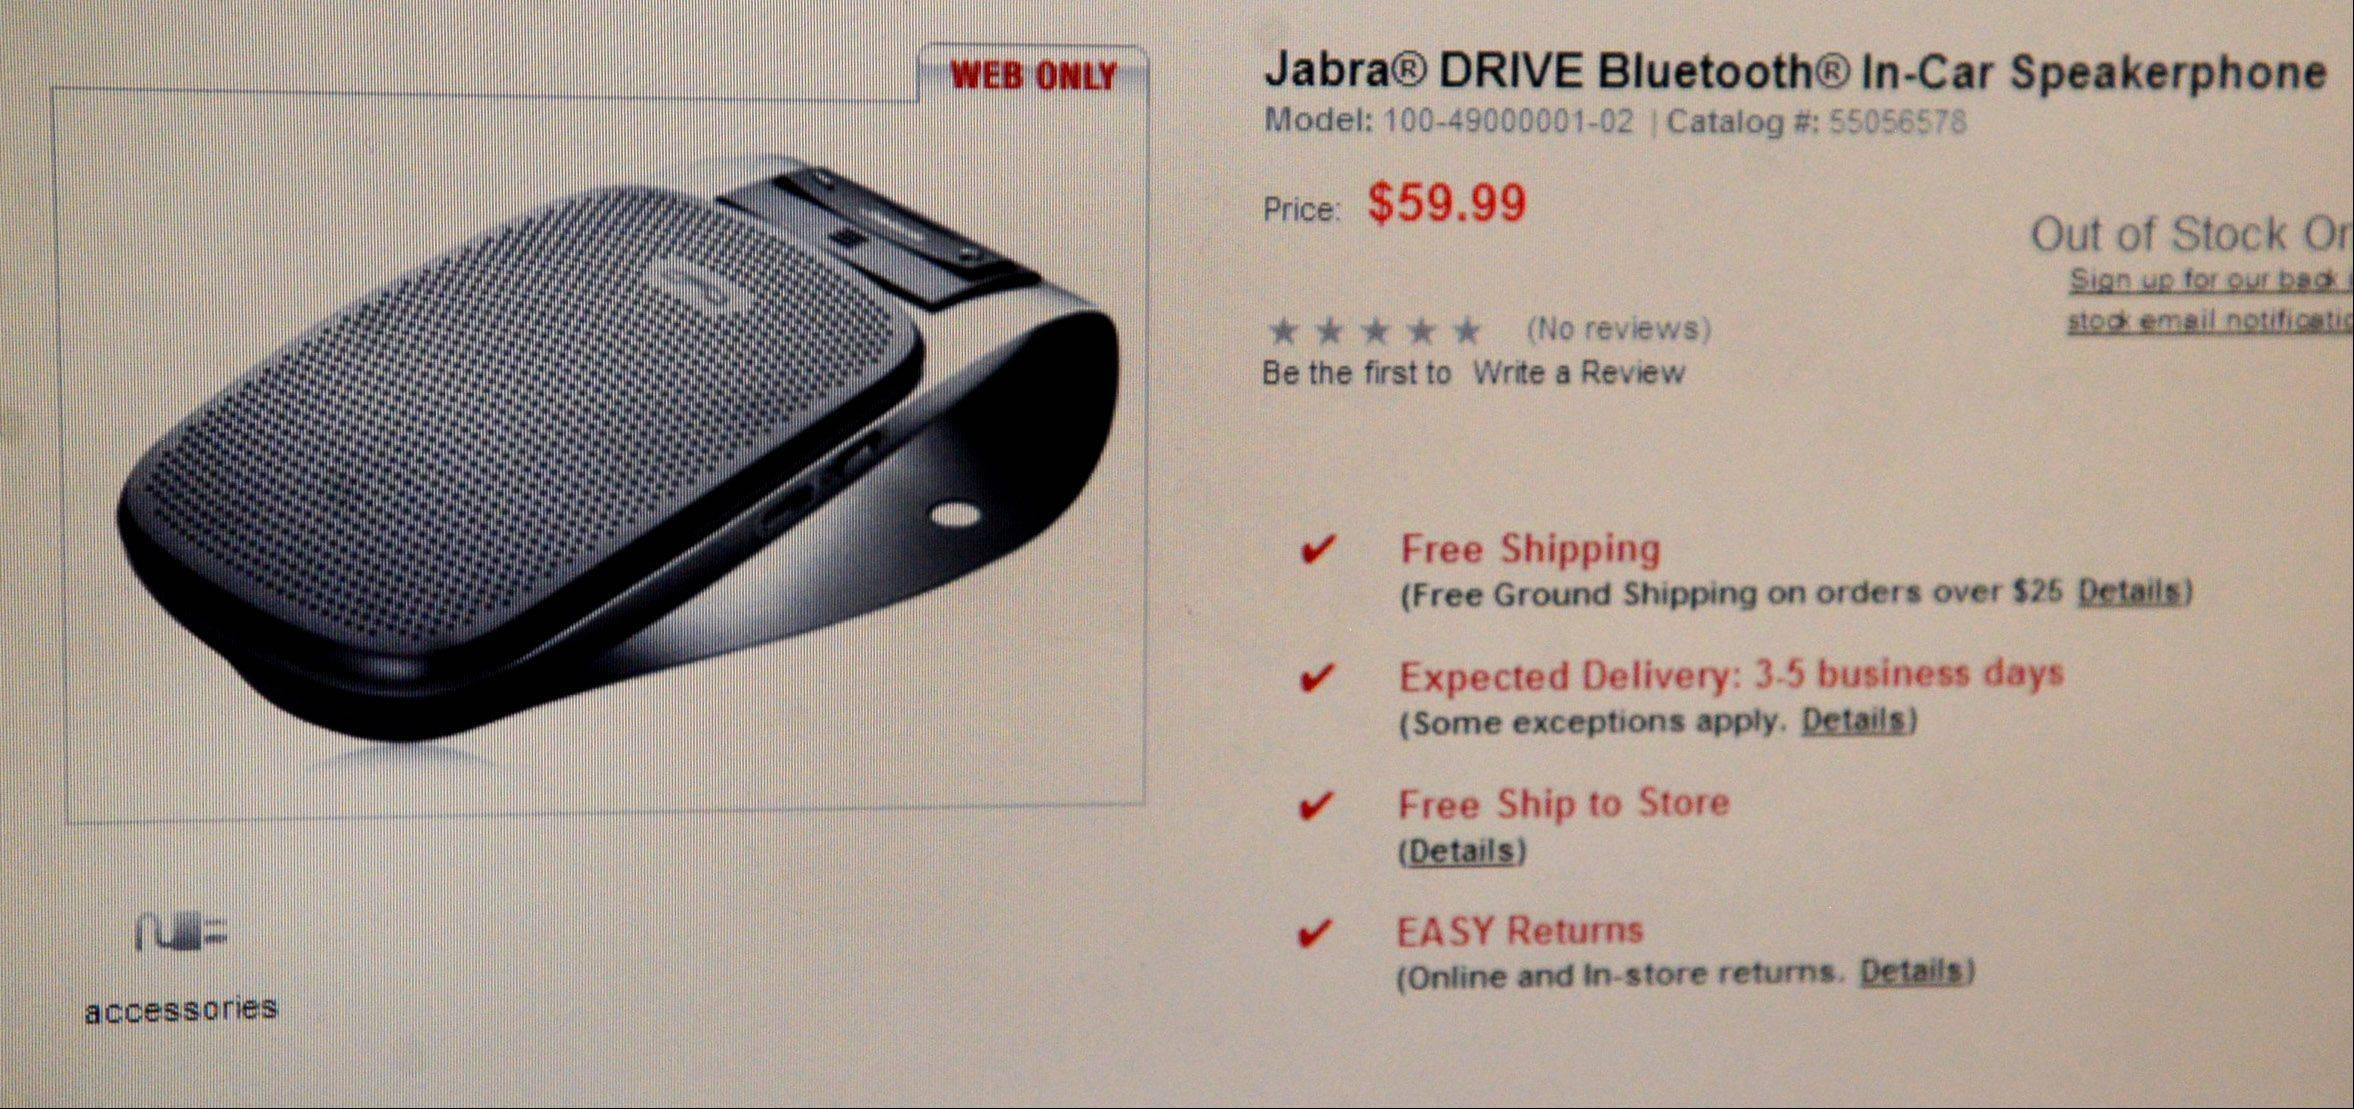 The Jabra Bluetooth In-Car Speakerphone is a hard item to keep in stock, Arlington Heights Radio Shack employees say. Suburban electronics and telecommunications stores report brisk sales of Bluetooth devices now that it's illegal in Illinois to drive and talk on your phone without the wireless gear.